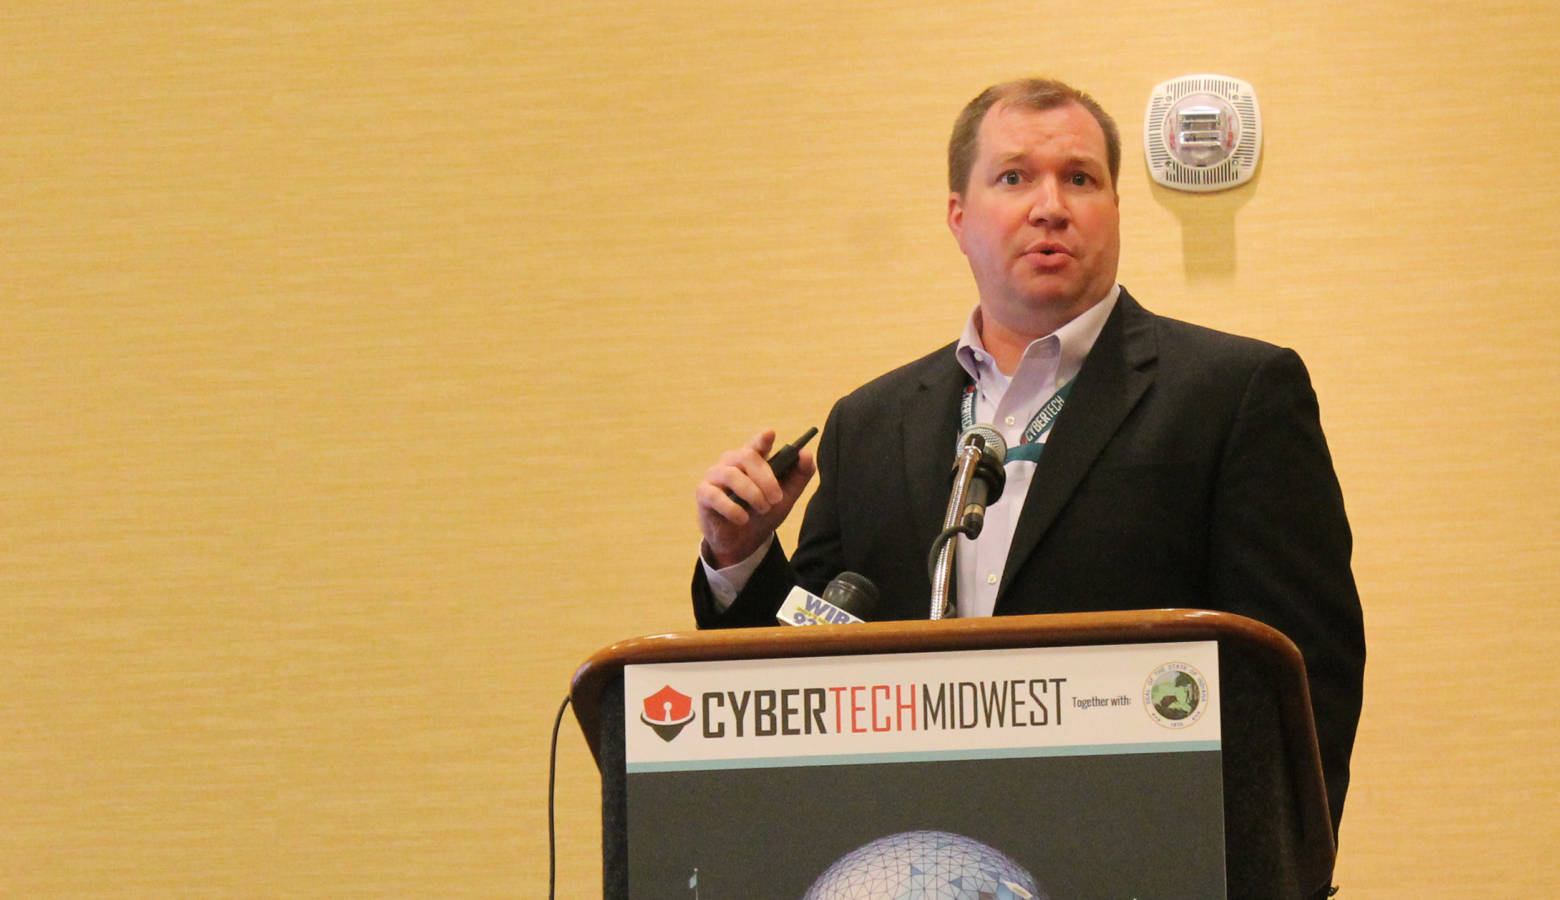 NCAA Chief Information Officer Judd Williams talks about what could qualify as sensitive data for a sports organization. (Lauren Chapman/IPB News)